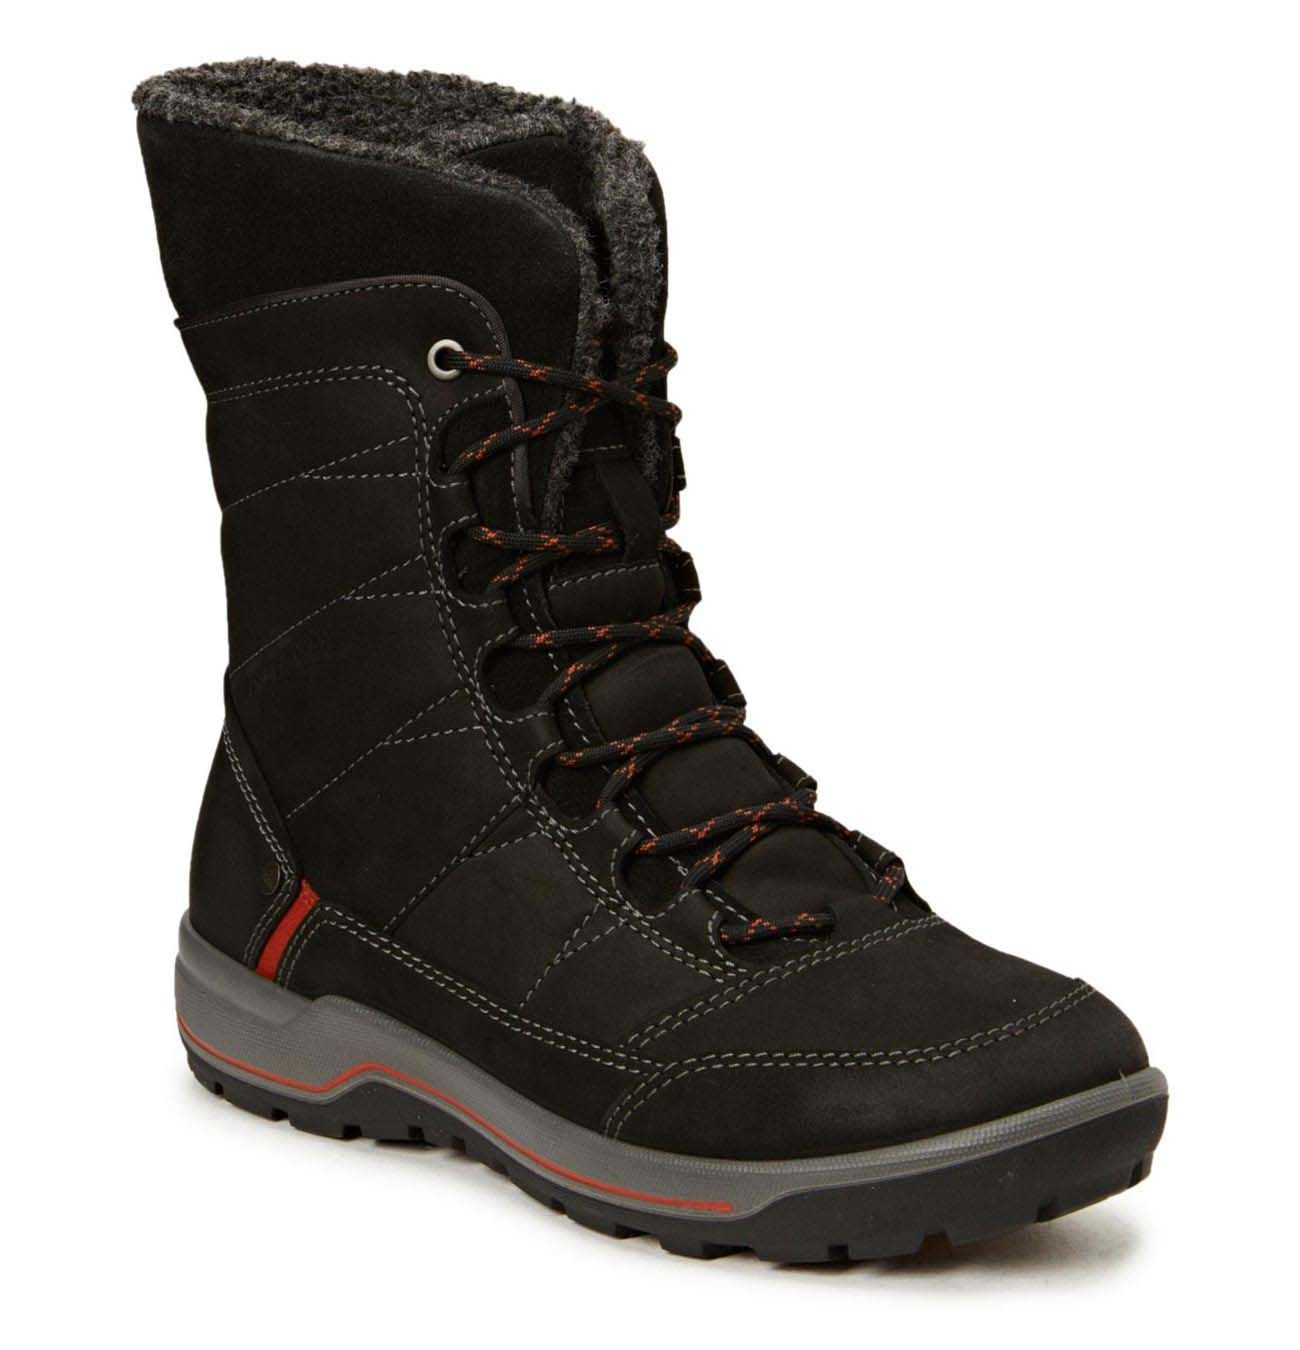 7d62e4d6 ECCO TRACE LITE | Winter Boots | Pinterest | Womens fashion, Winter ...